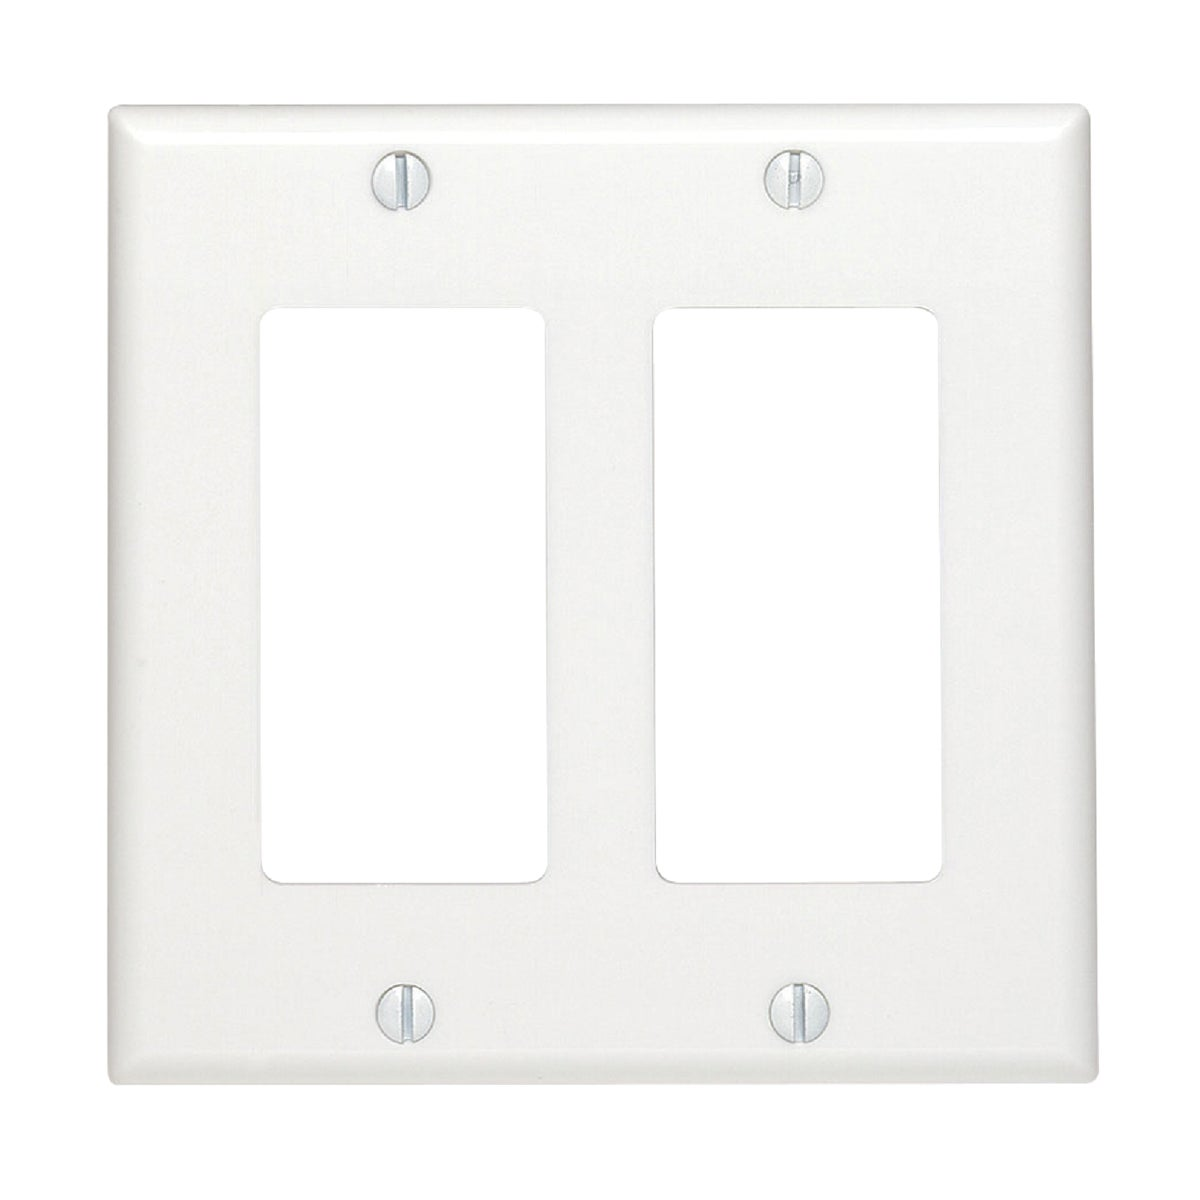 WHT 2-GFI WALL PLATE - 80409W by Leviton Mfg Co